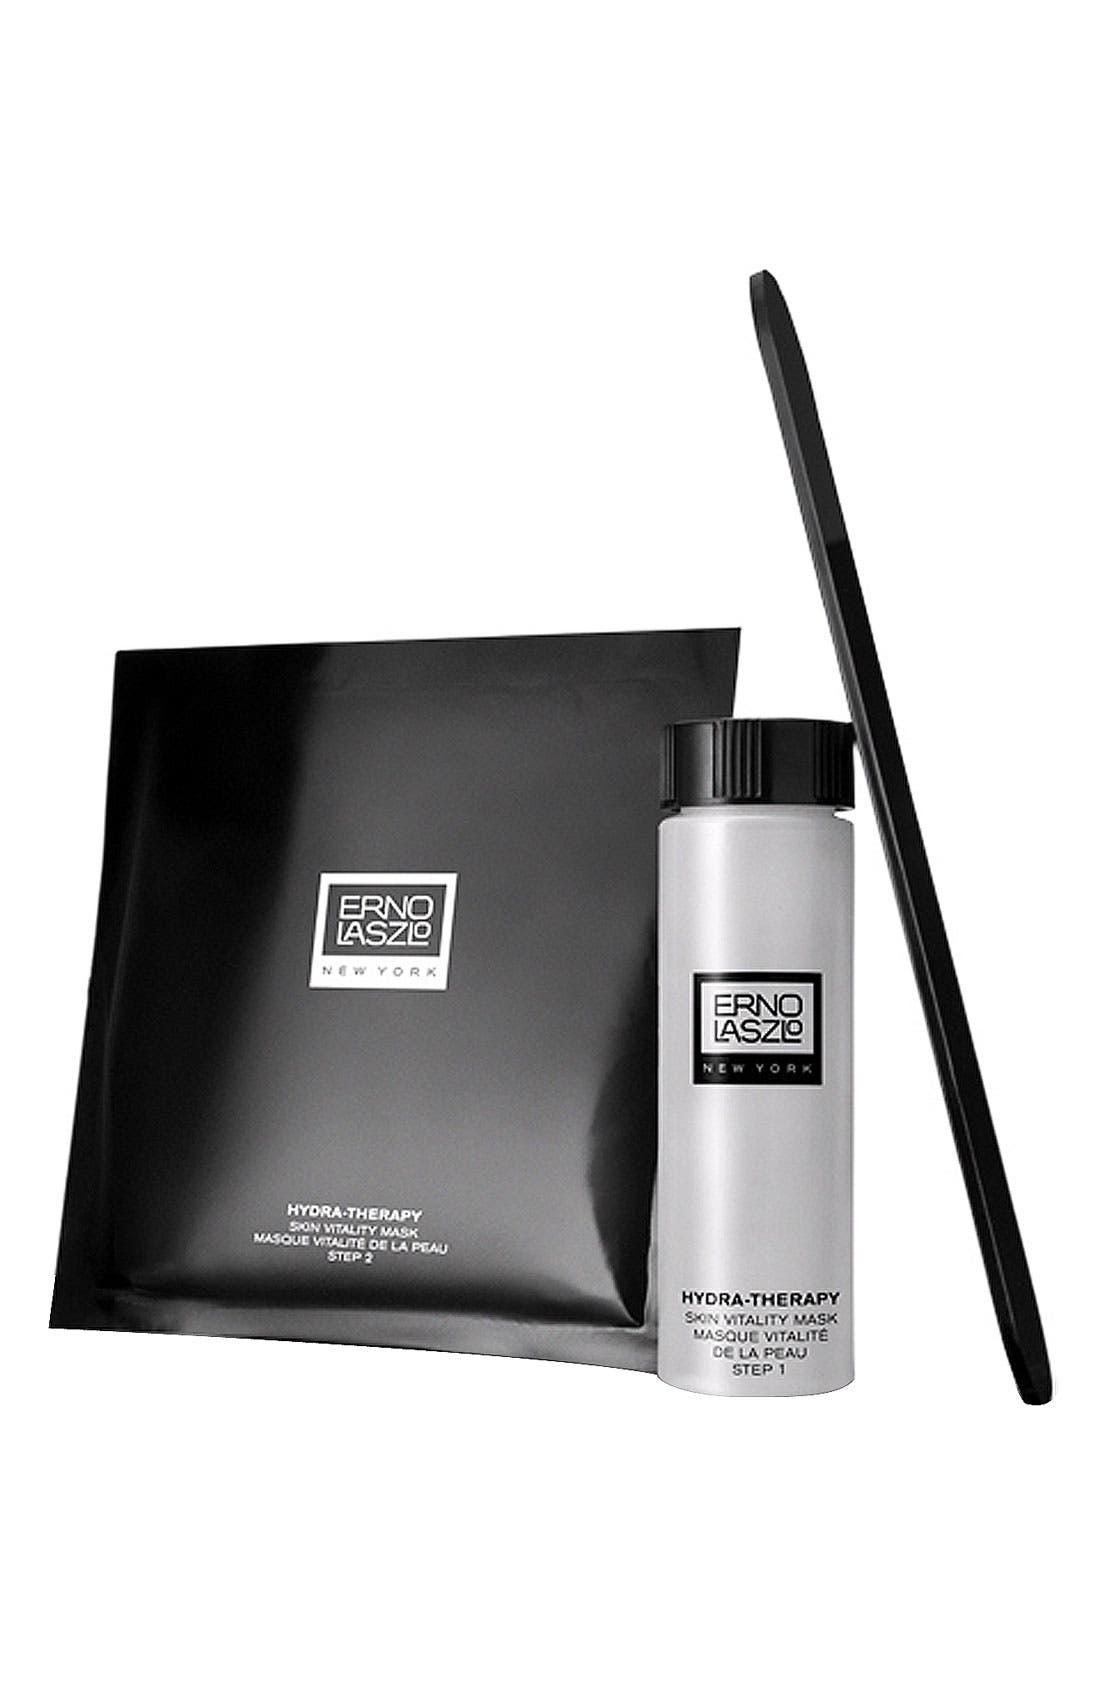 Erno Laszlo Hydra-Therapy Skin Vitality Treatment Kit